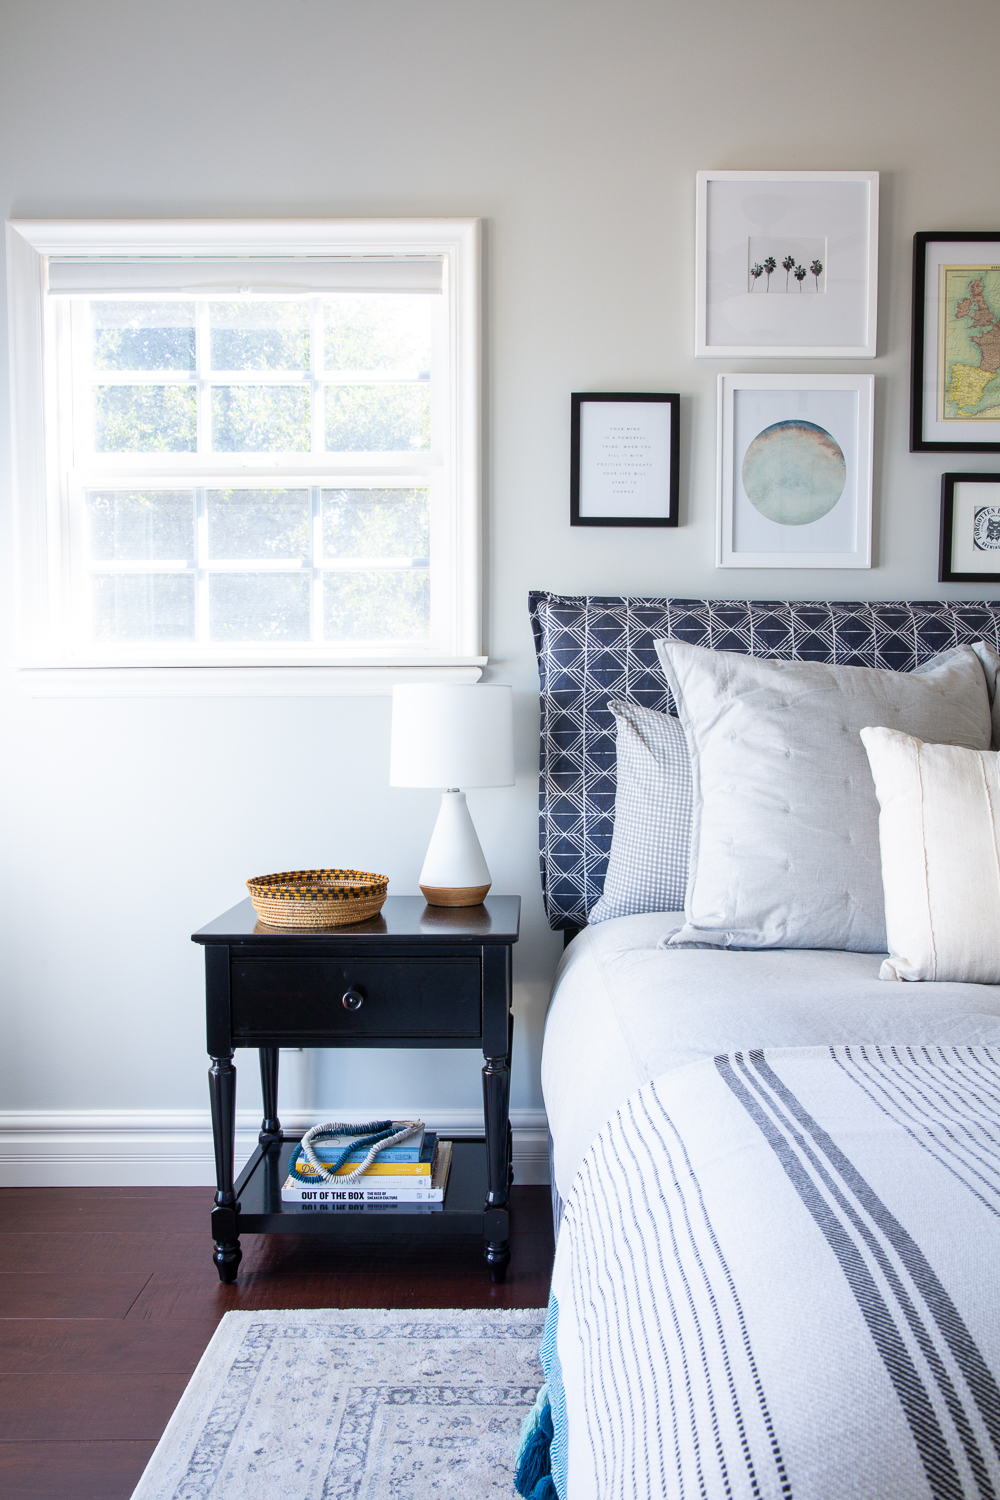 Lexington Hills bedroom interior design project by Sundling Studio located in Southern California.